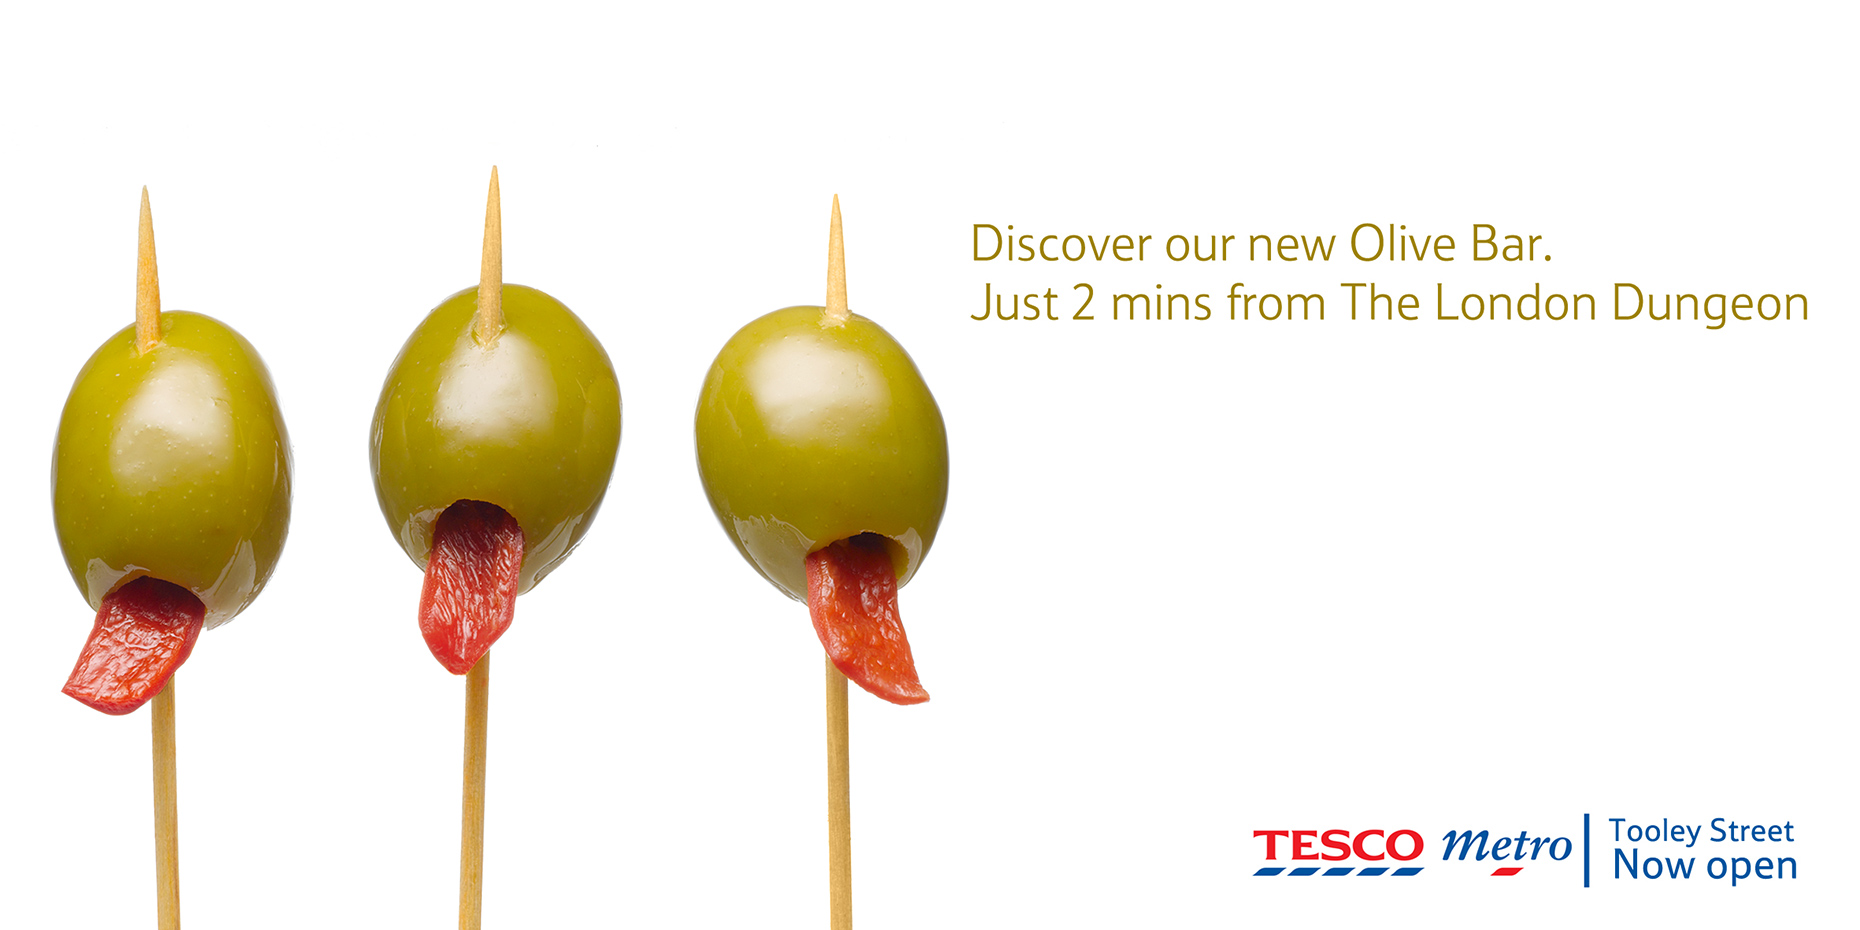 Tesco metro Olives | Colin Campbell-Food Photographer